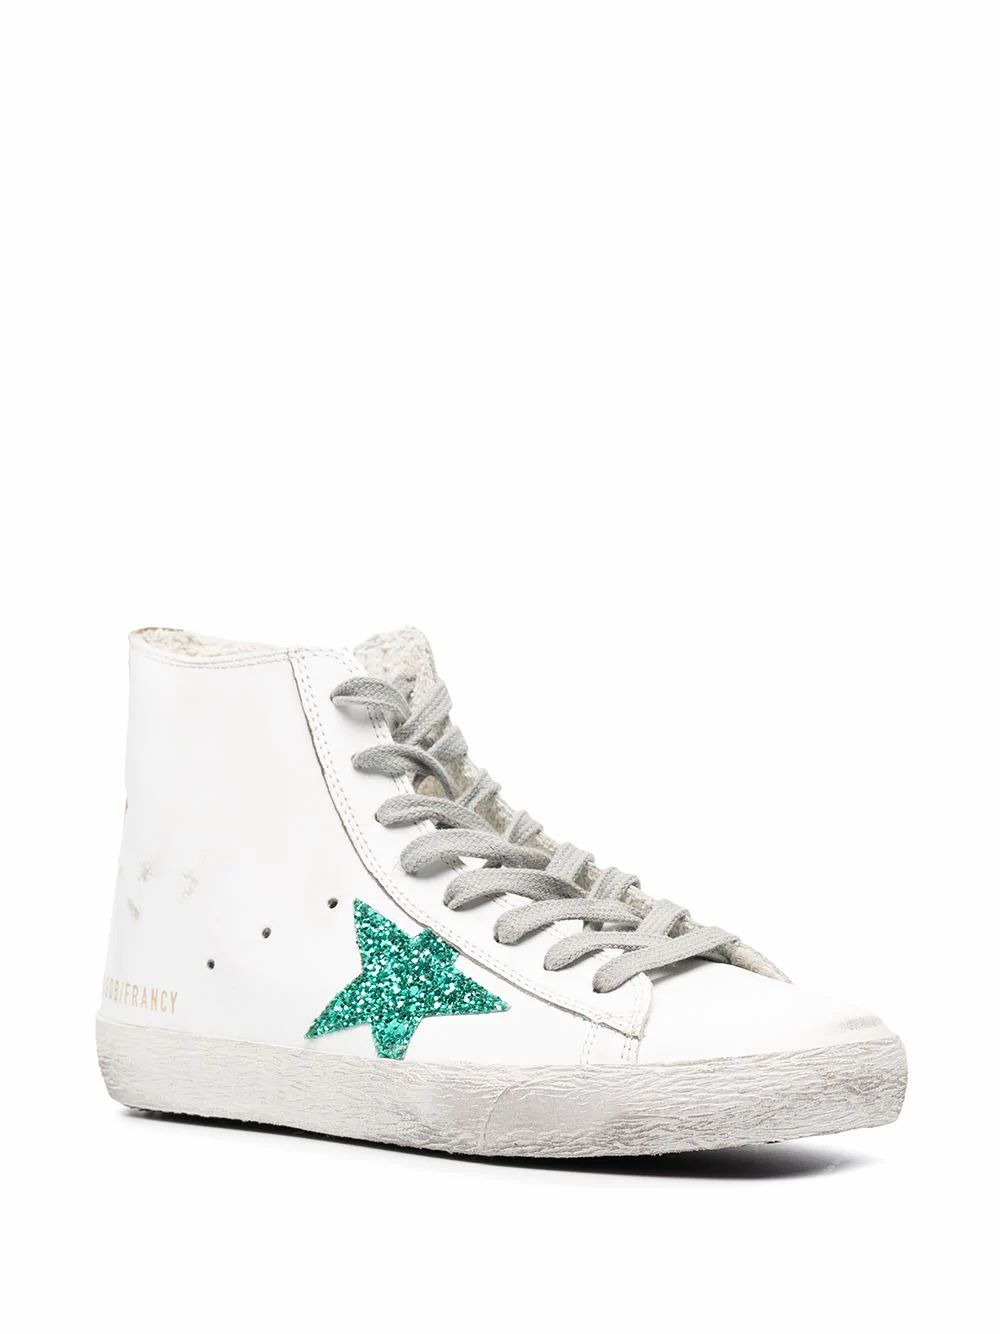 GOLDEN GOOSE Leathers GOLDEN GOOSE WOMEN'S WHITE LEATHER HI TOP SNEAKERS